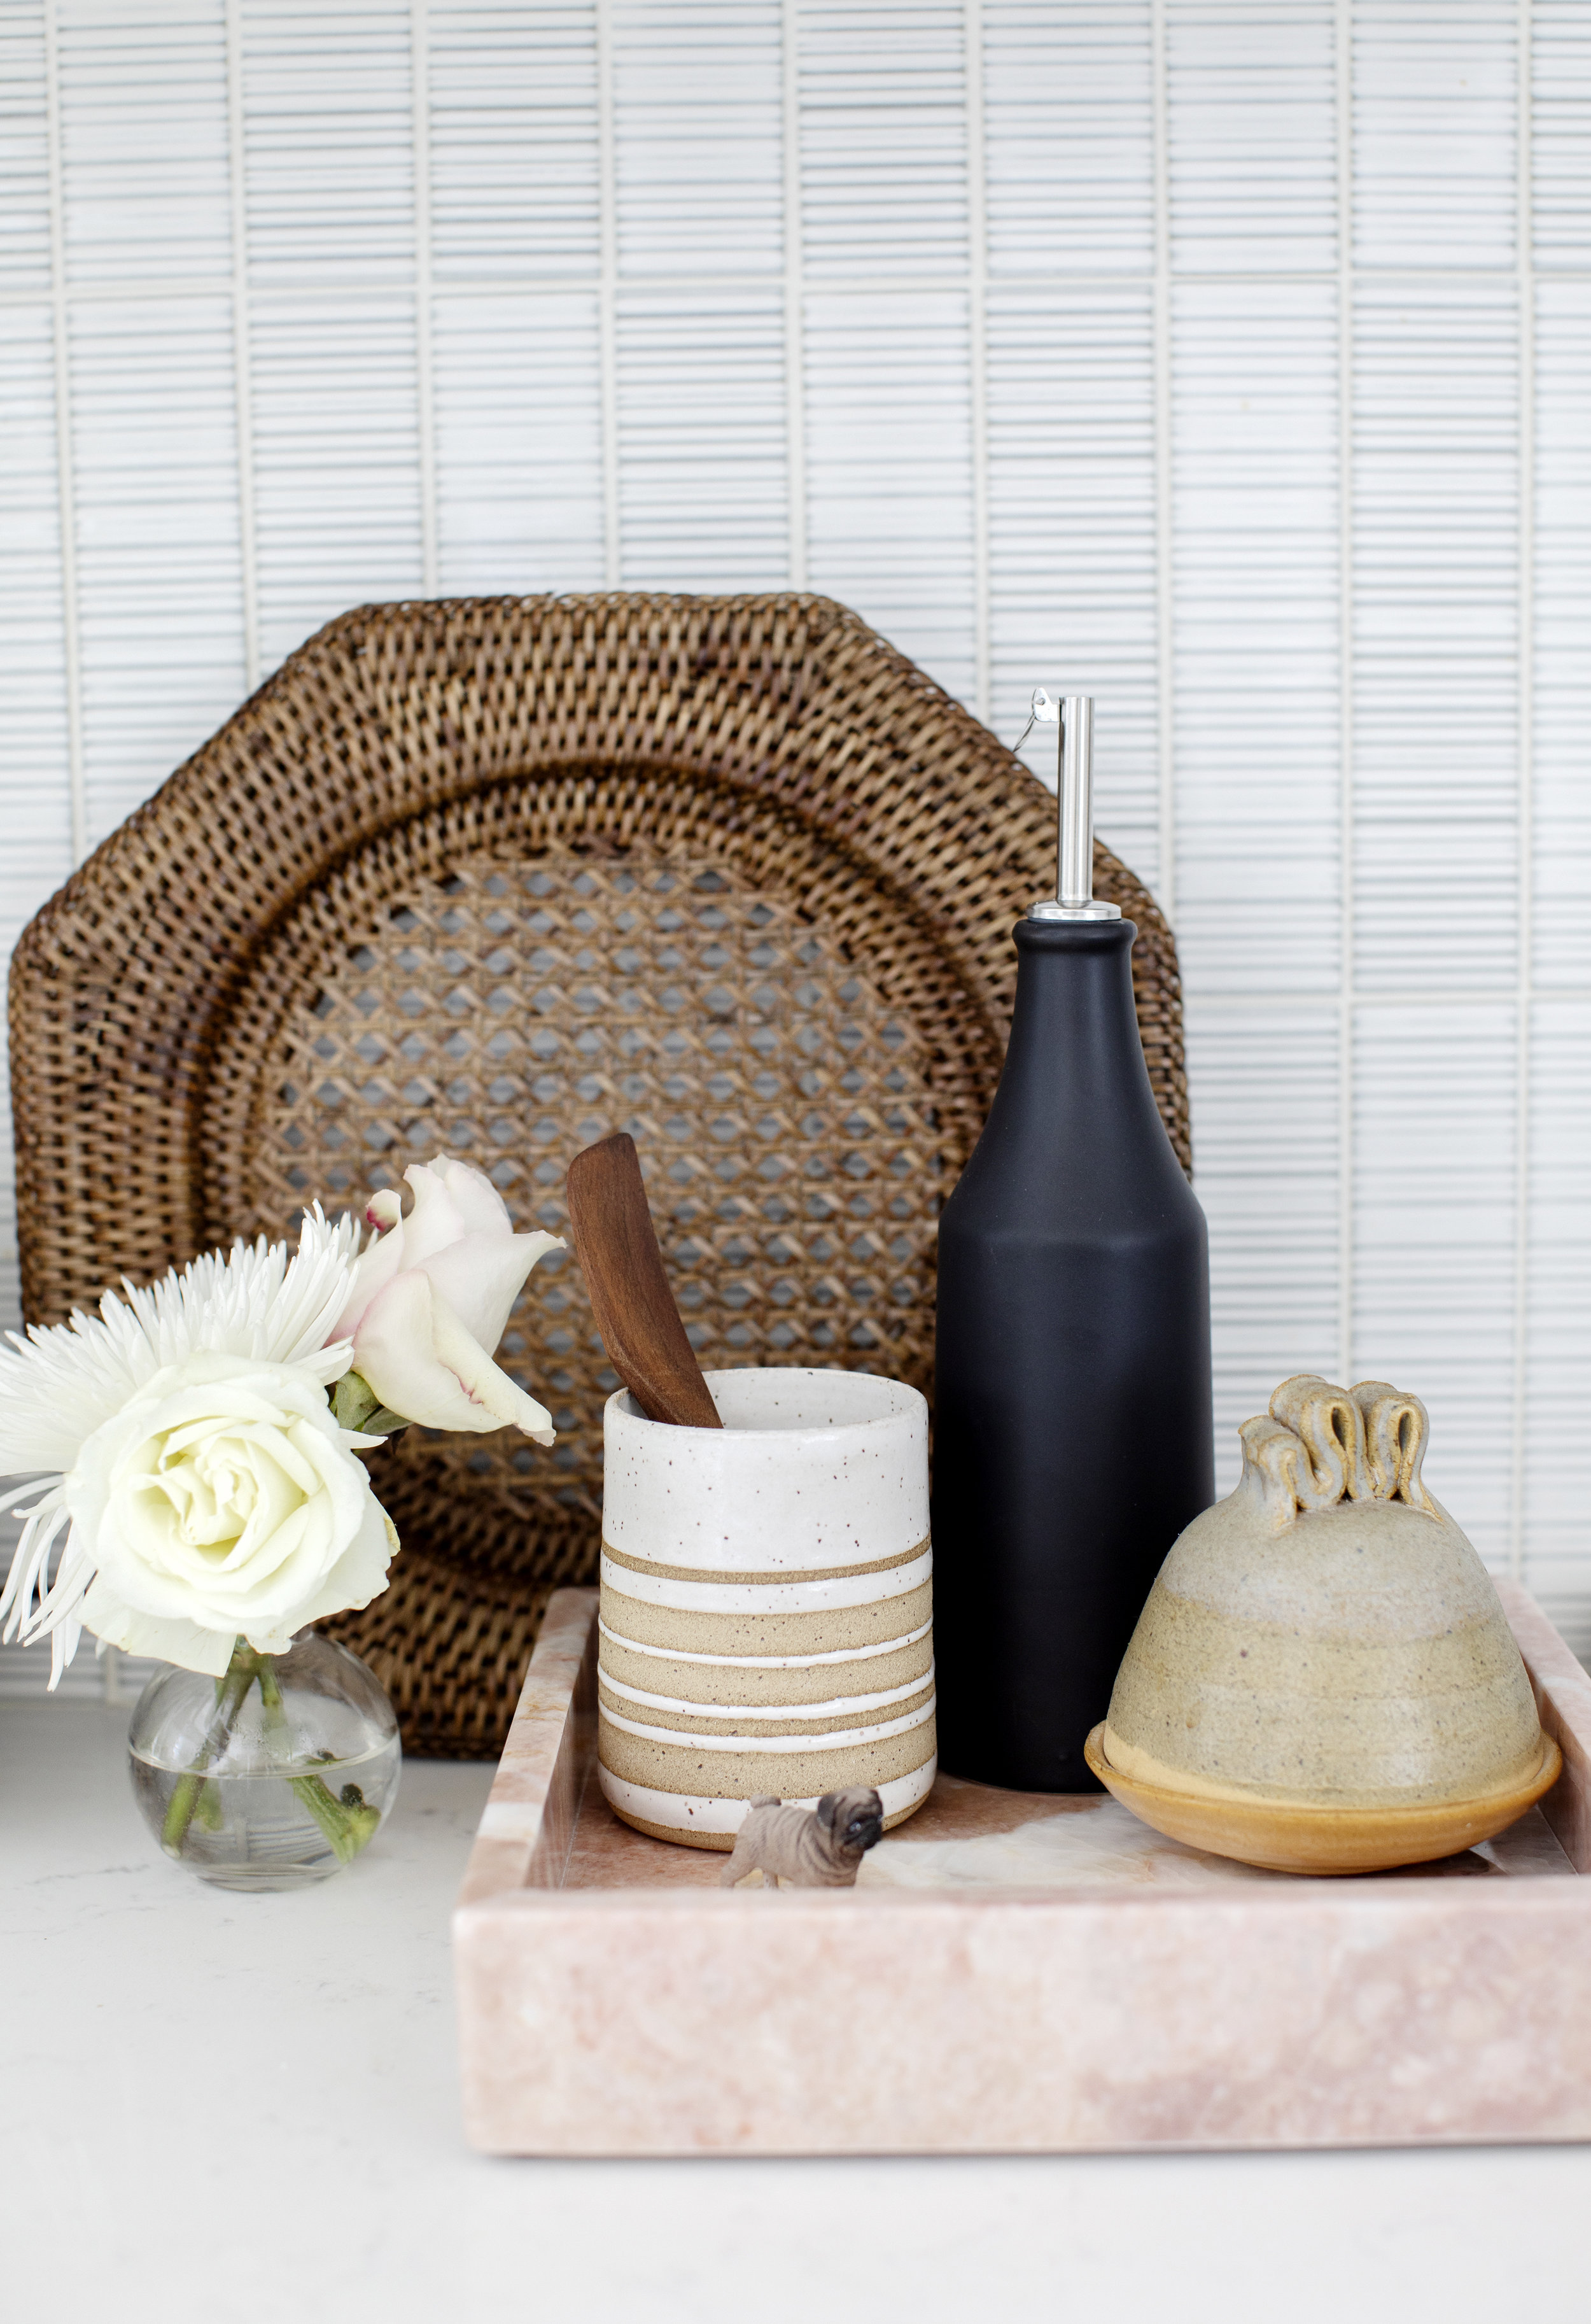 A close up shot of a decorative tray with kitchen pieces, including a wicker plate and a vase with roses